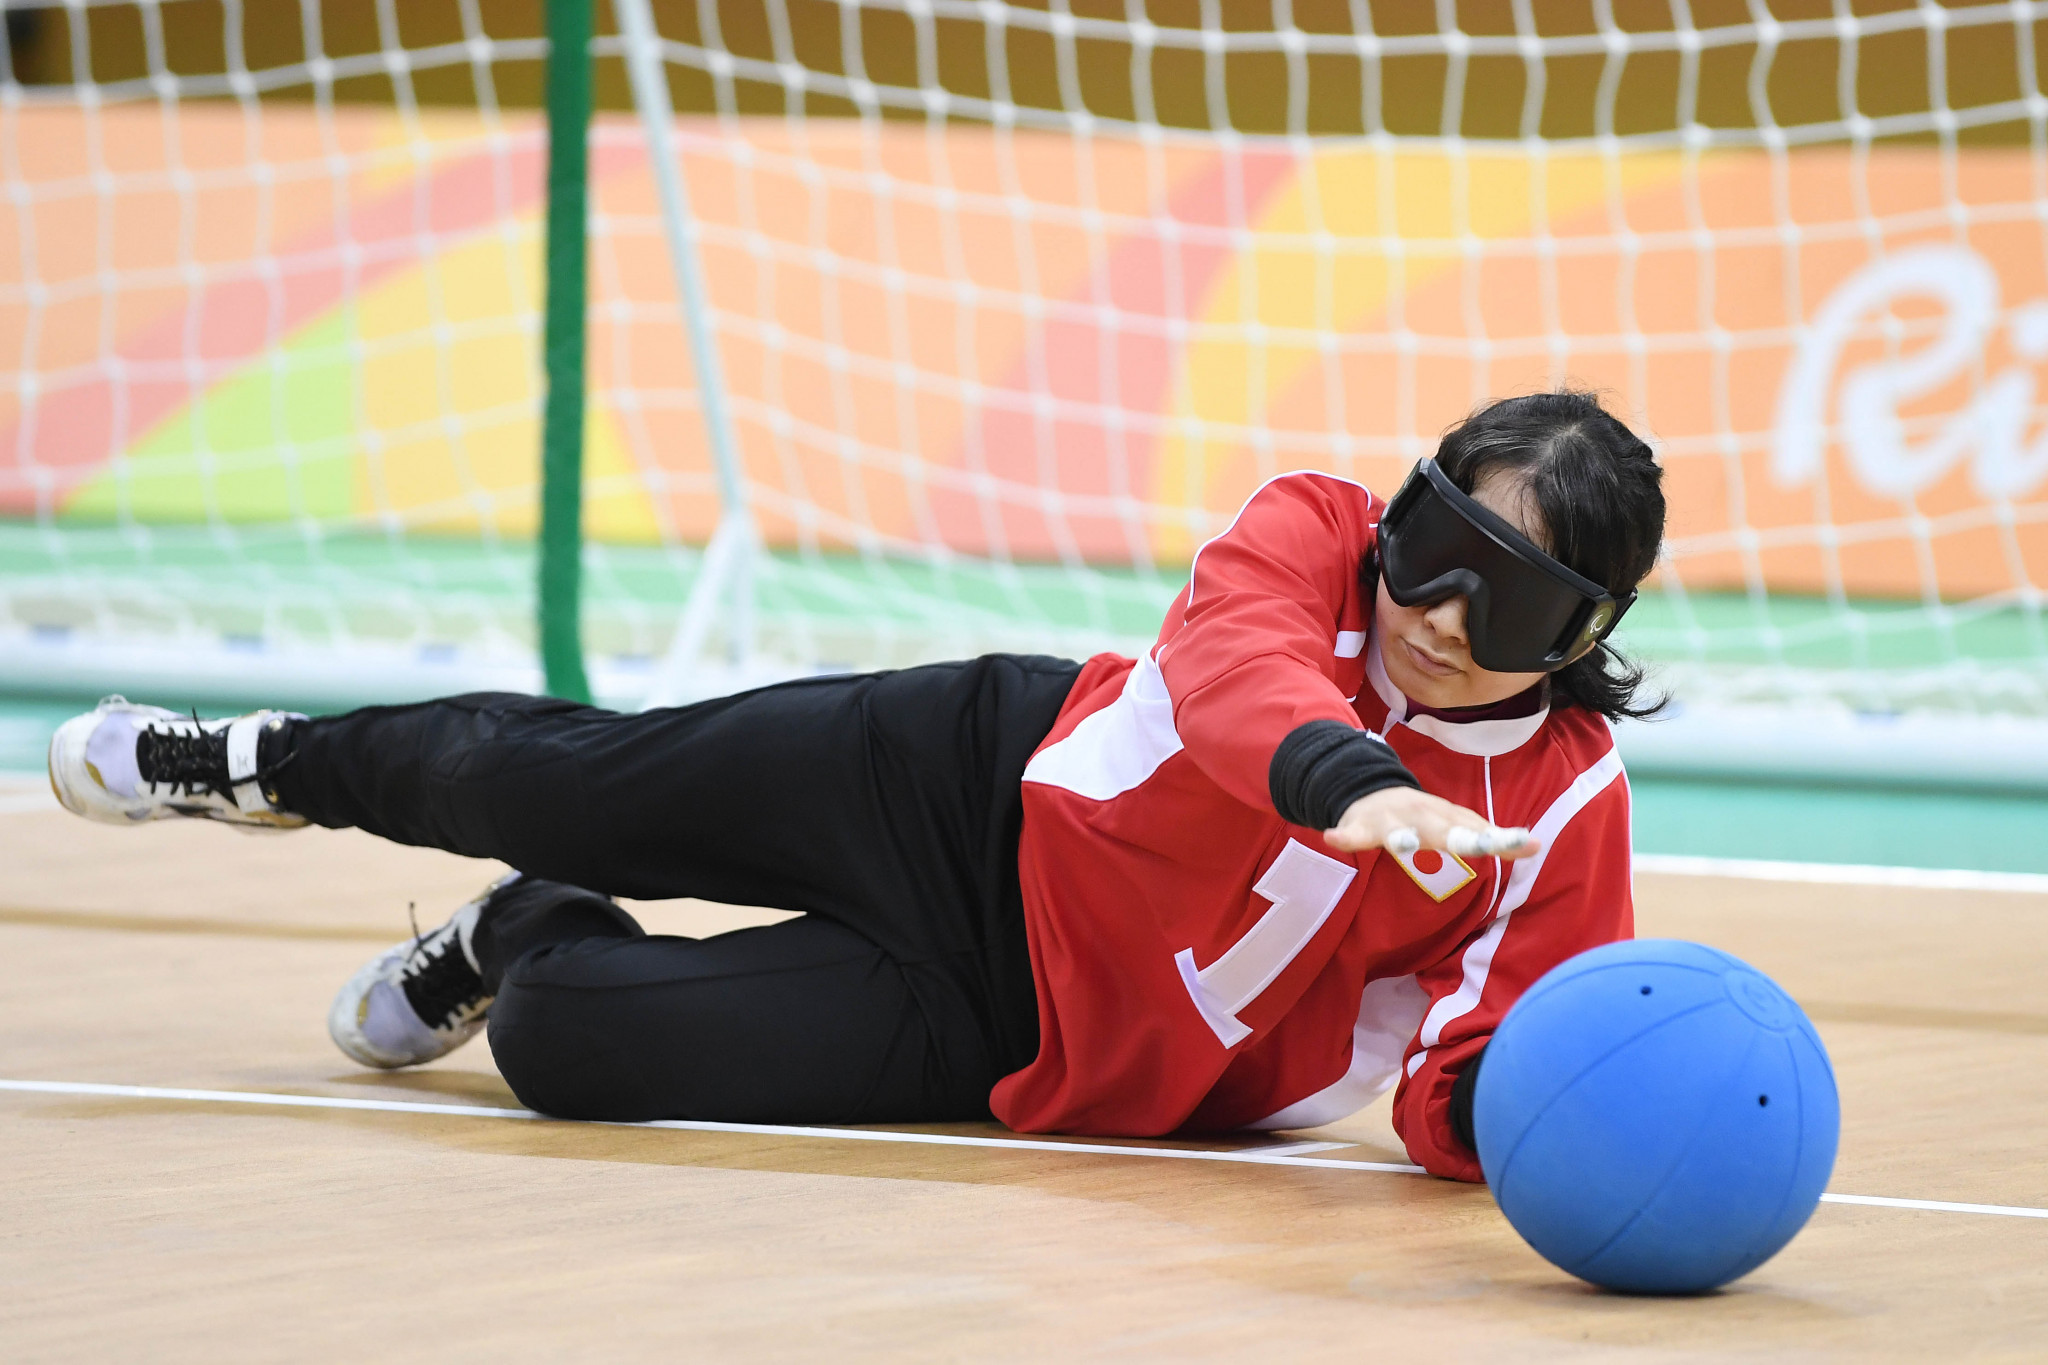 Two goalballers among IPC Athlete of the Month nominations for December